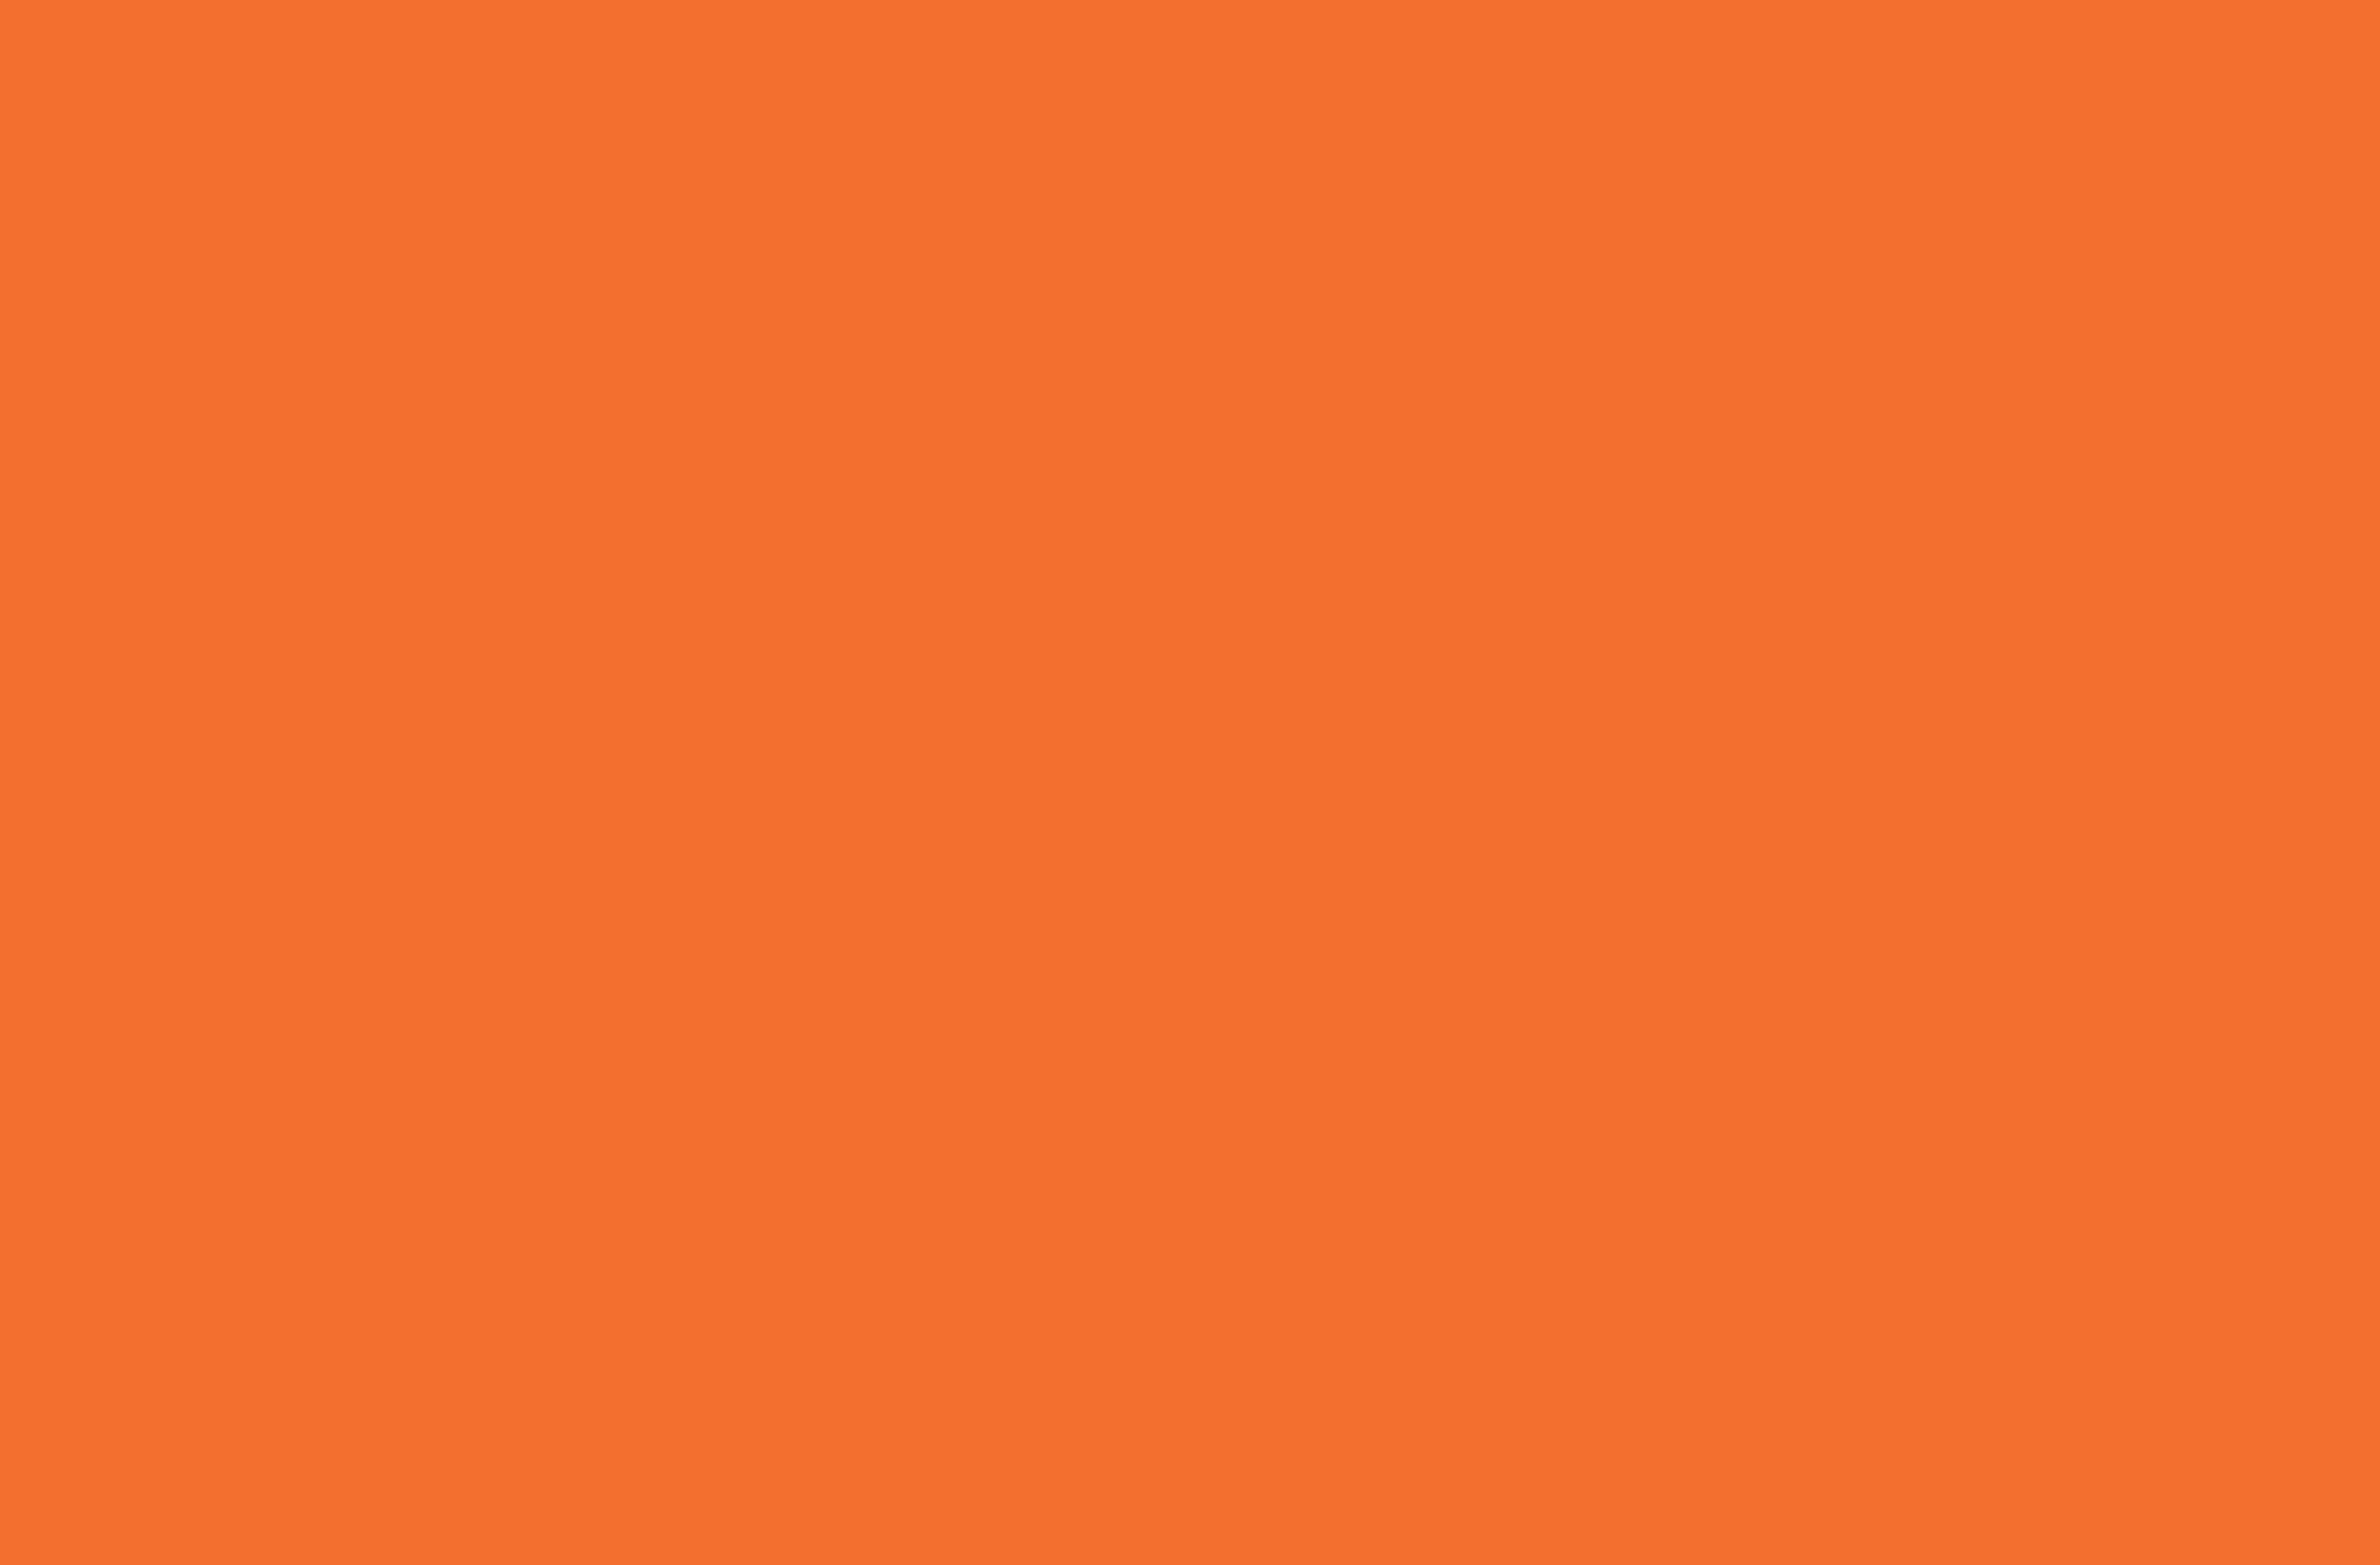 An image of an orange square that represents the Indigenous community